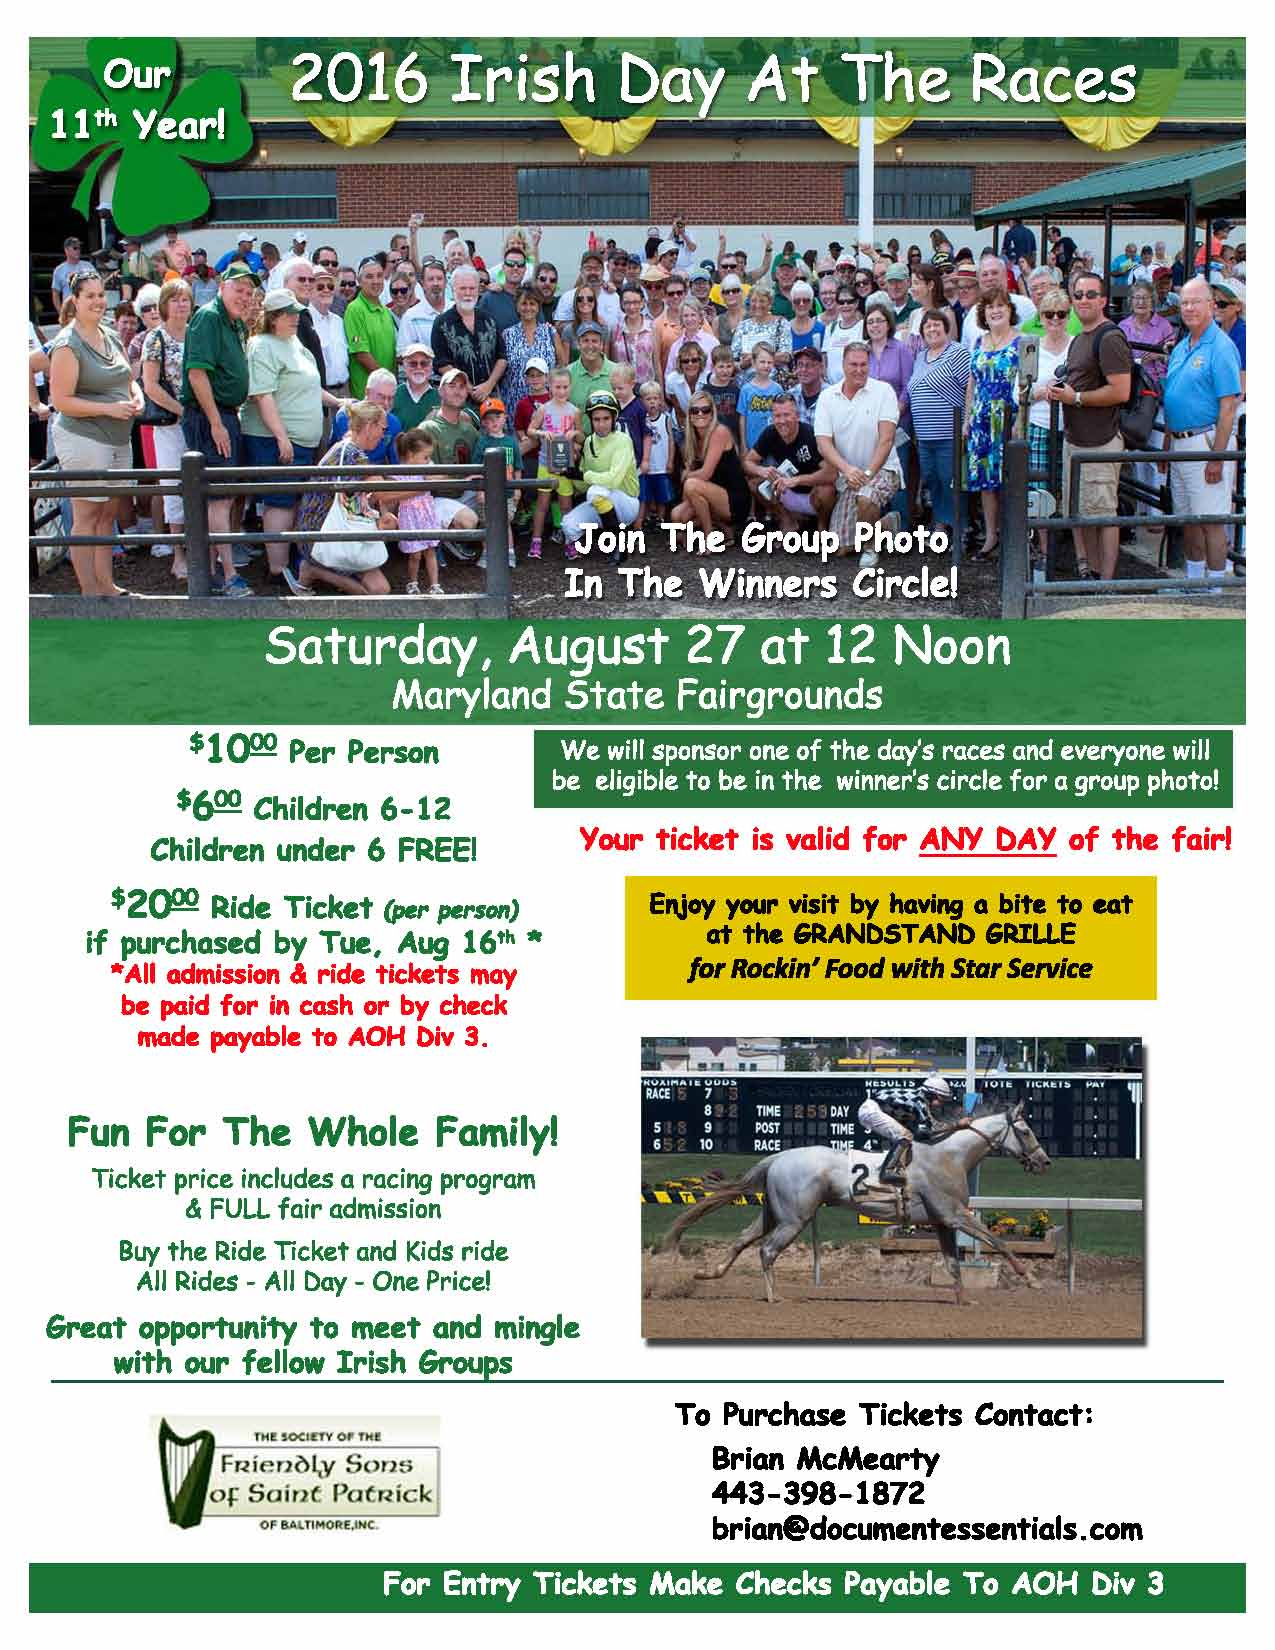 Day at the Races Flyer 2016 - FSSP